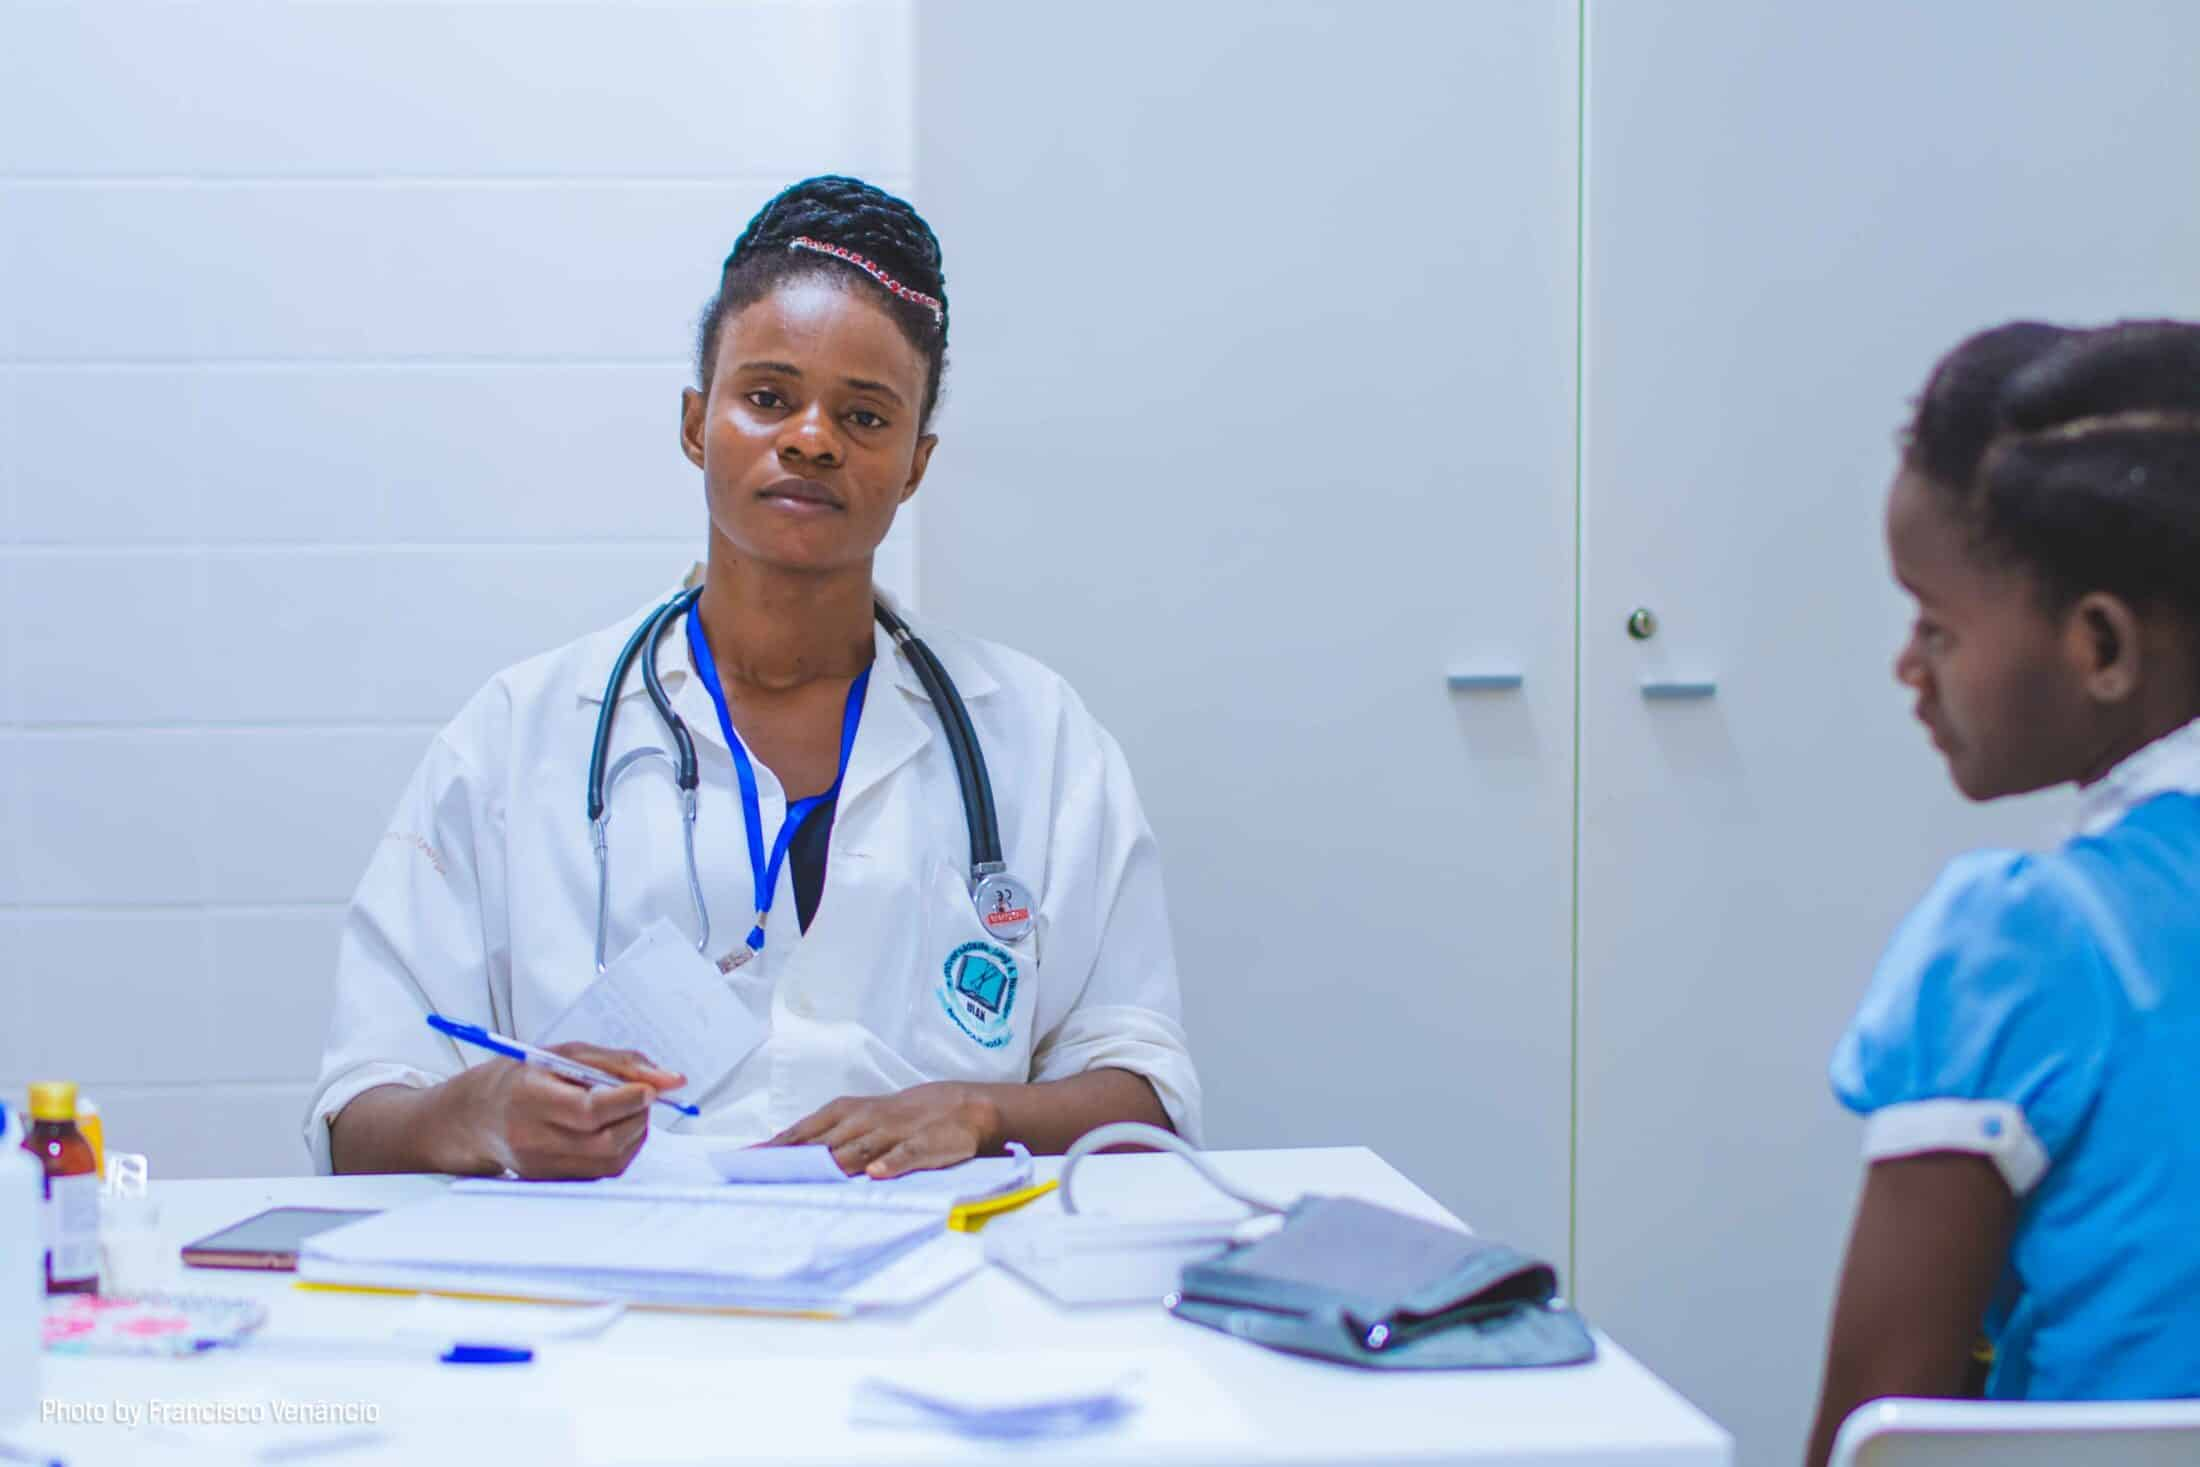 Essential Tax Planning Checklist For Medical Students, Residents and Fellows: Prepping for 2021